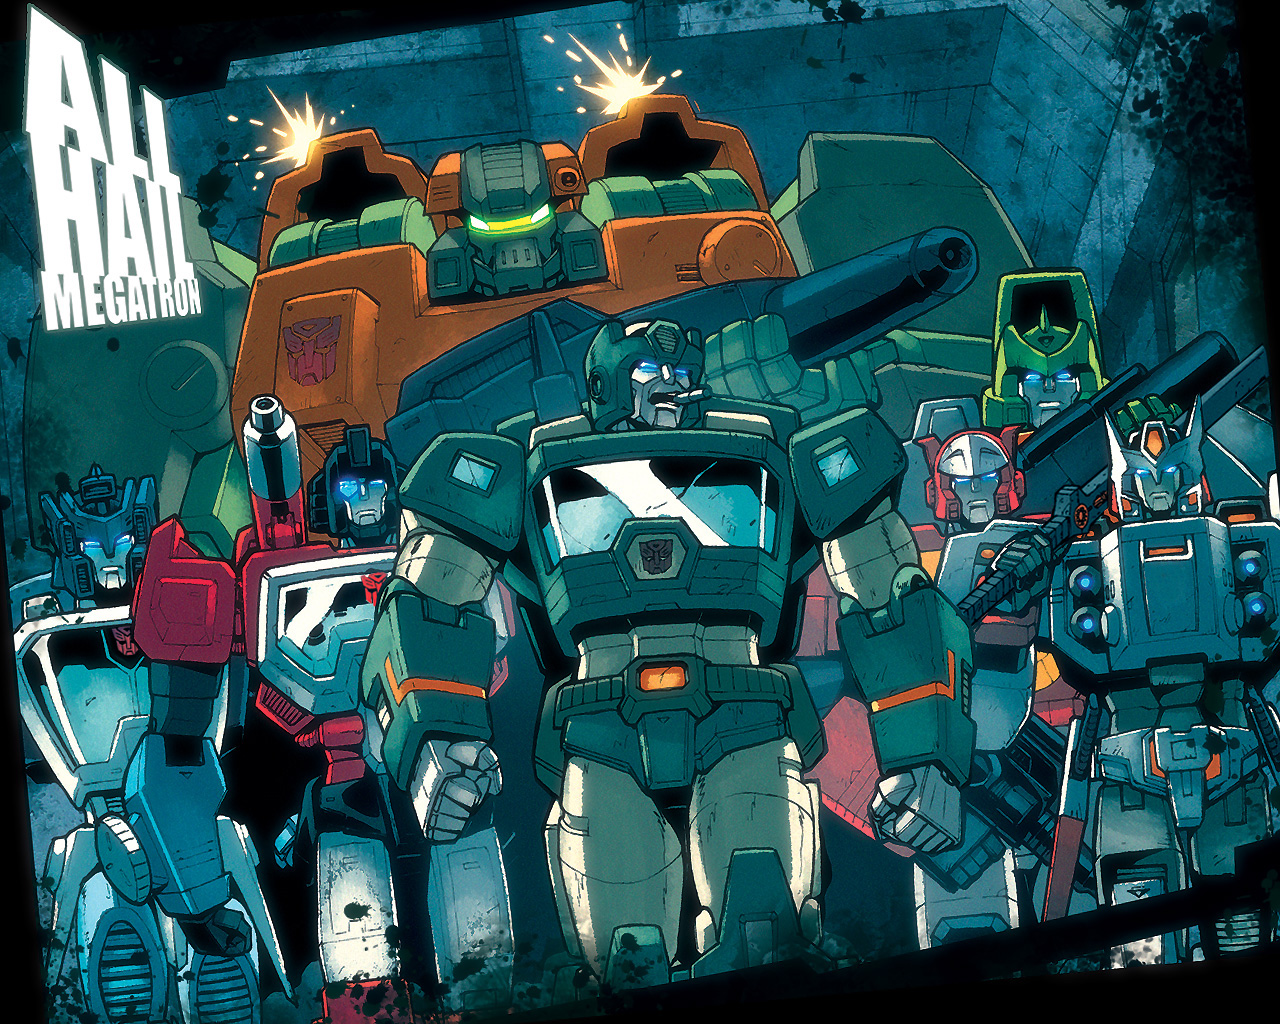 G1 autobots wallpaper gallery 3 1280 x 1024 pixels - Transformers desktop backgrounds ...